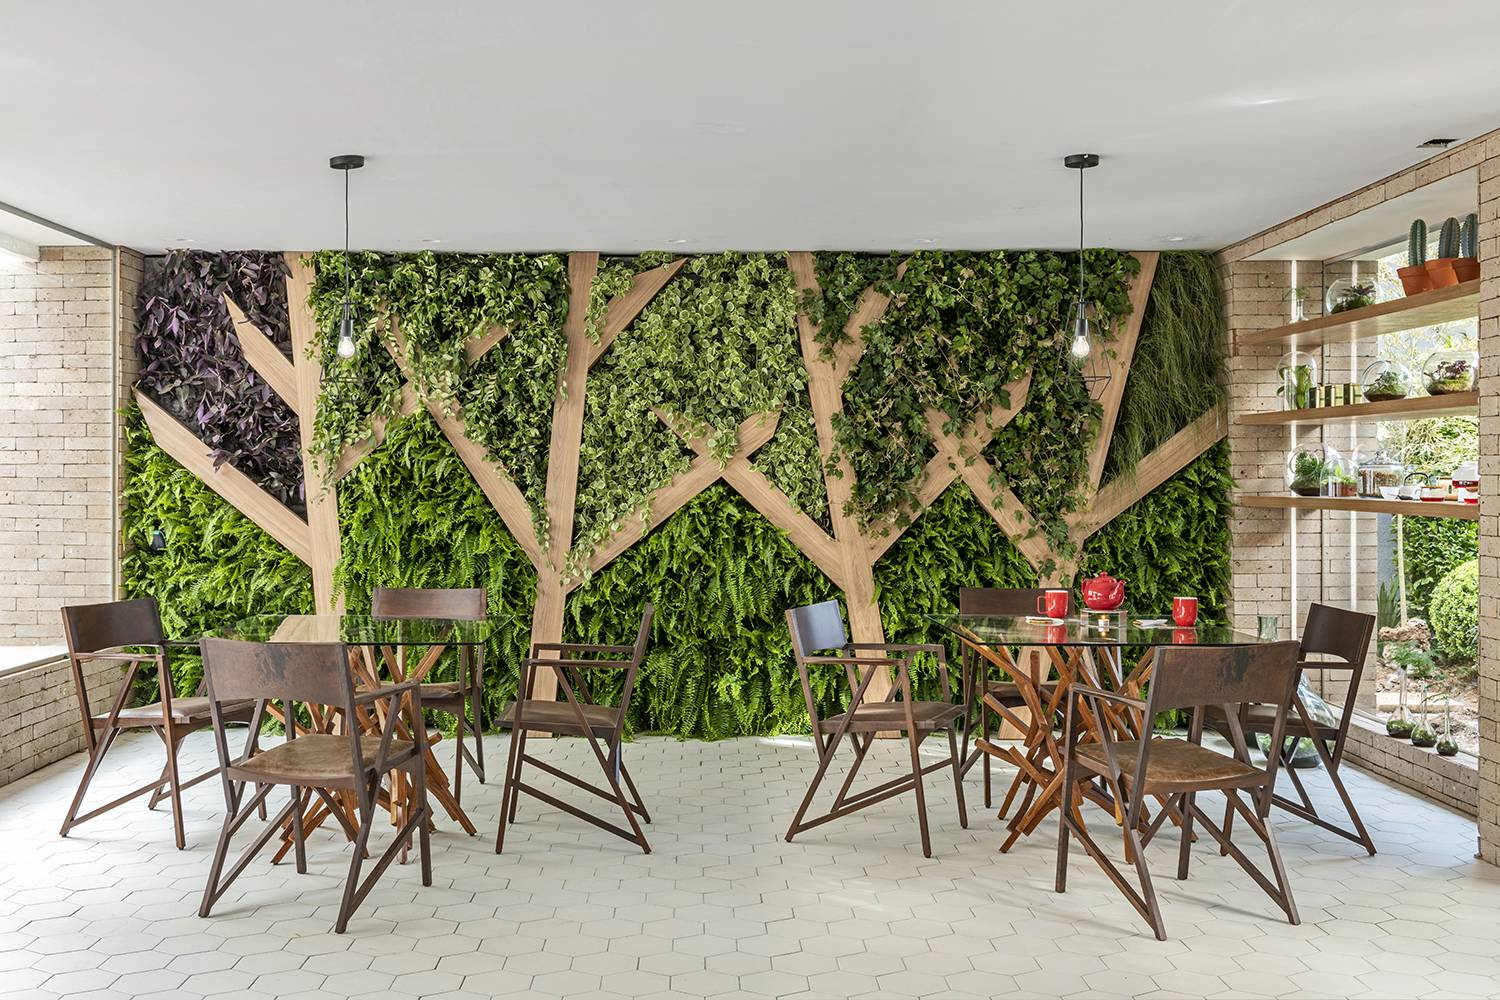 Vertical Gardening and Living Wall